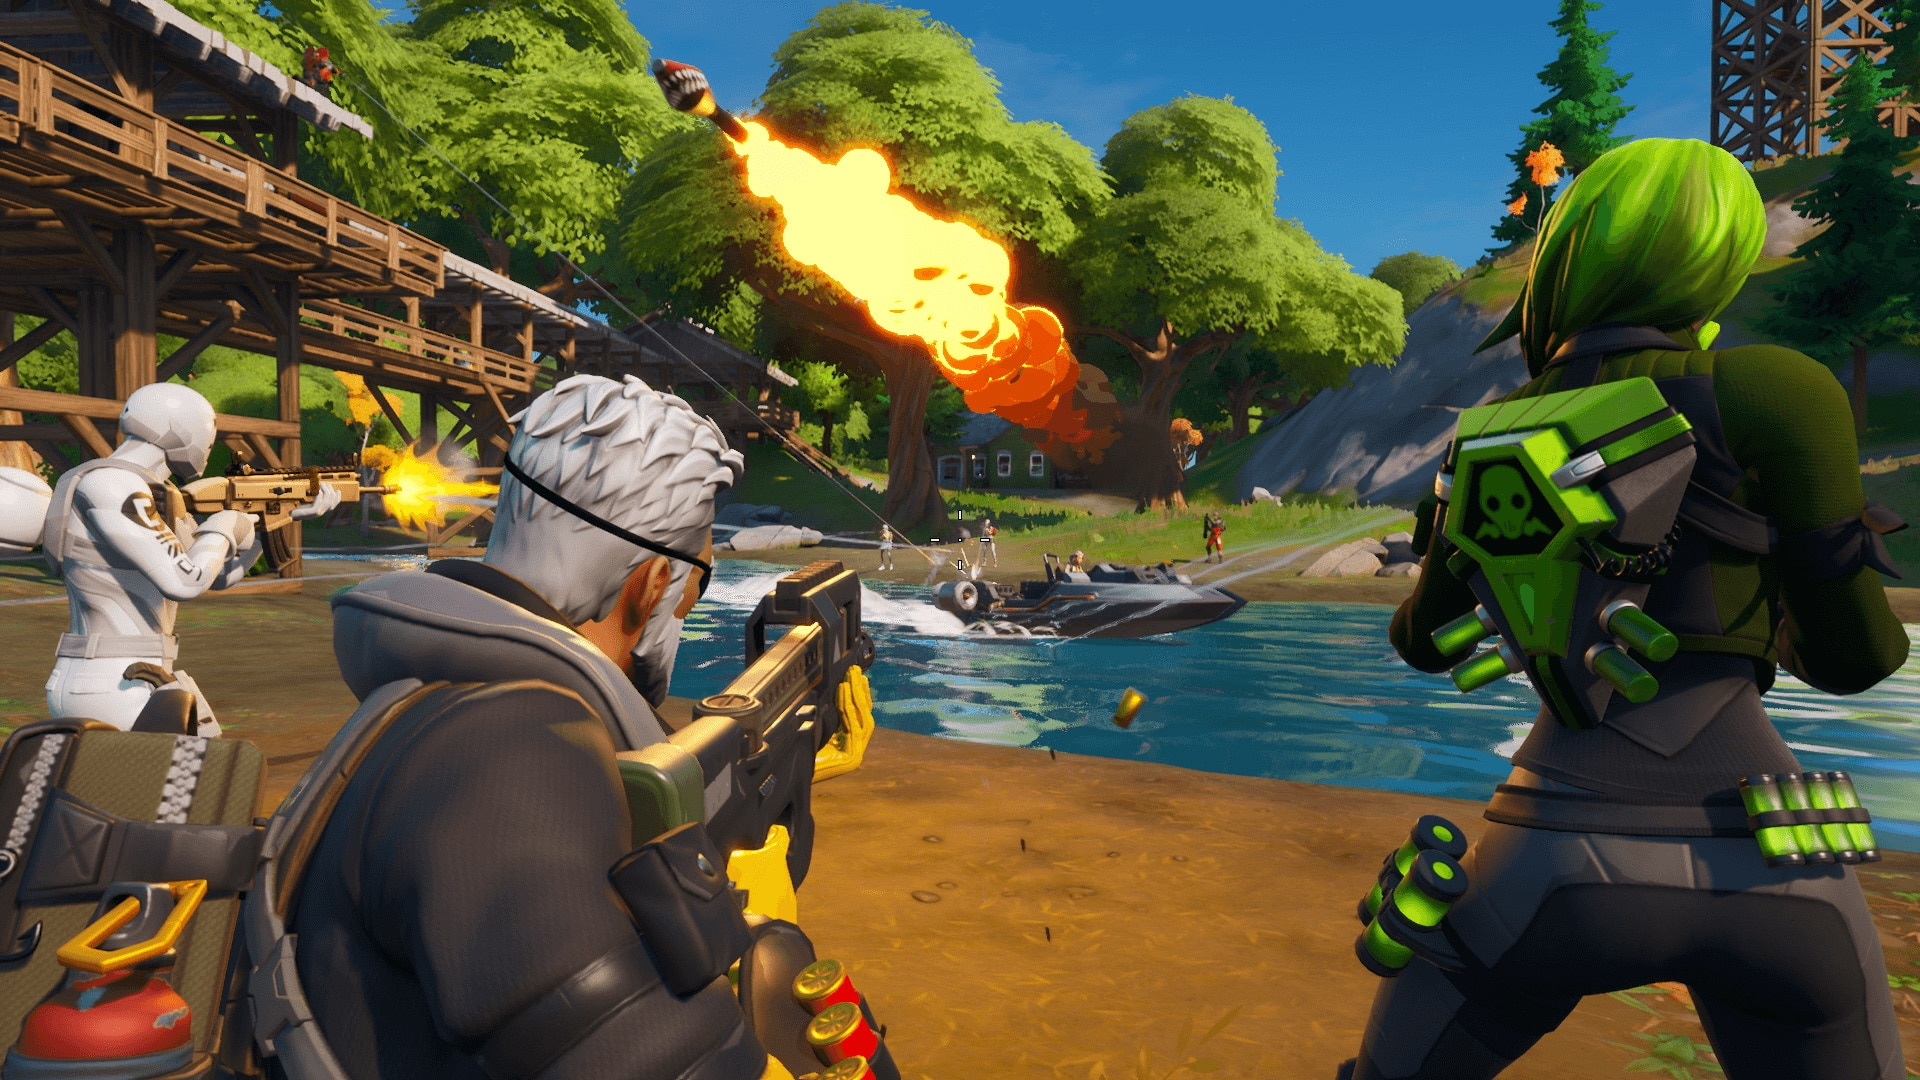 Fortnite Is Back With A New Map & Vehicle